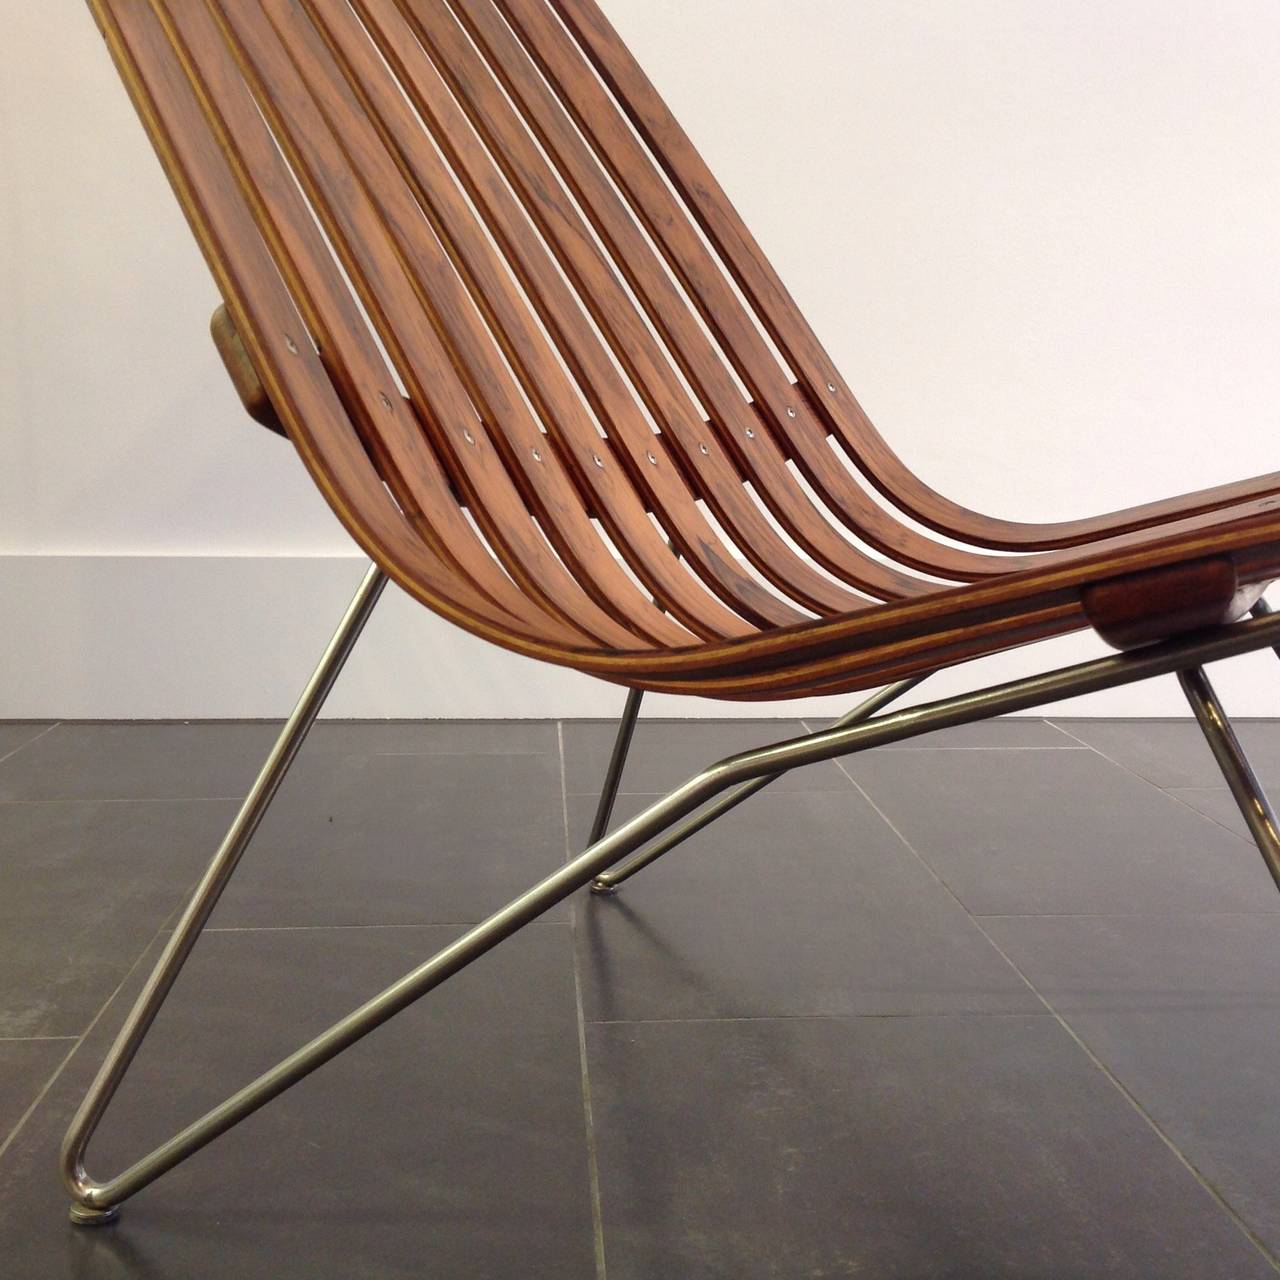 Hans brattrud rosewood scandia chair for hove mobler in for Furniture hove